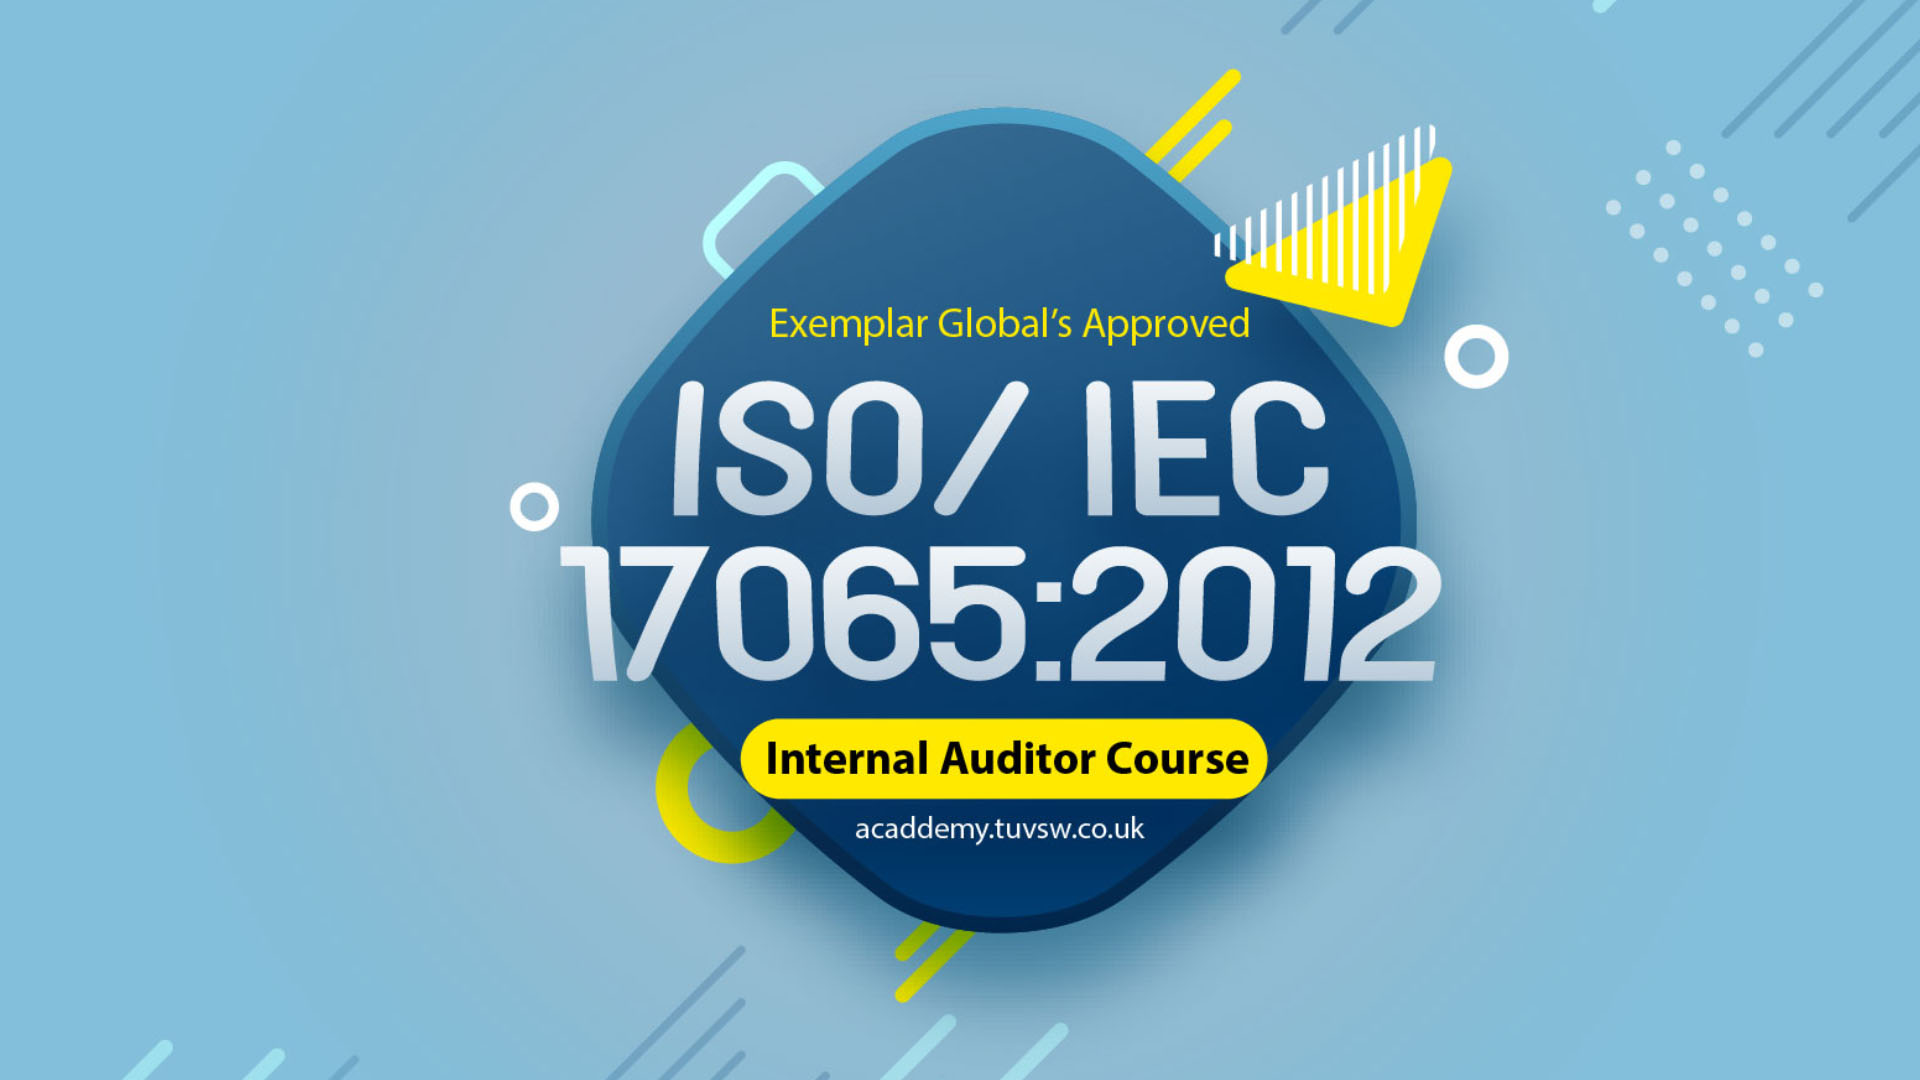 ISO/IEC 17065:2012 Internal Auditor Training Course